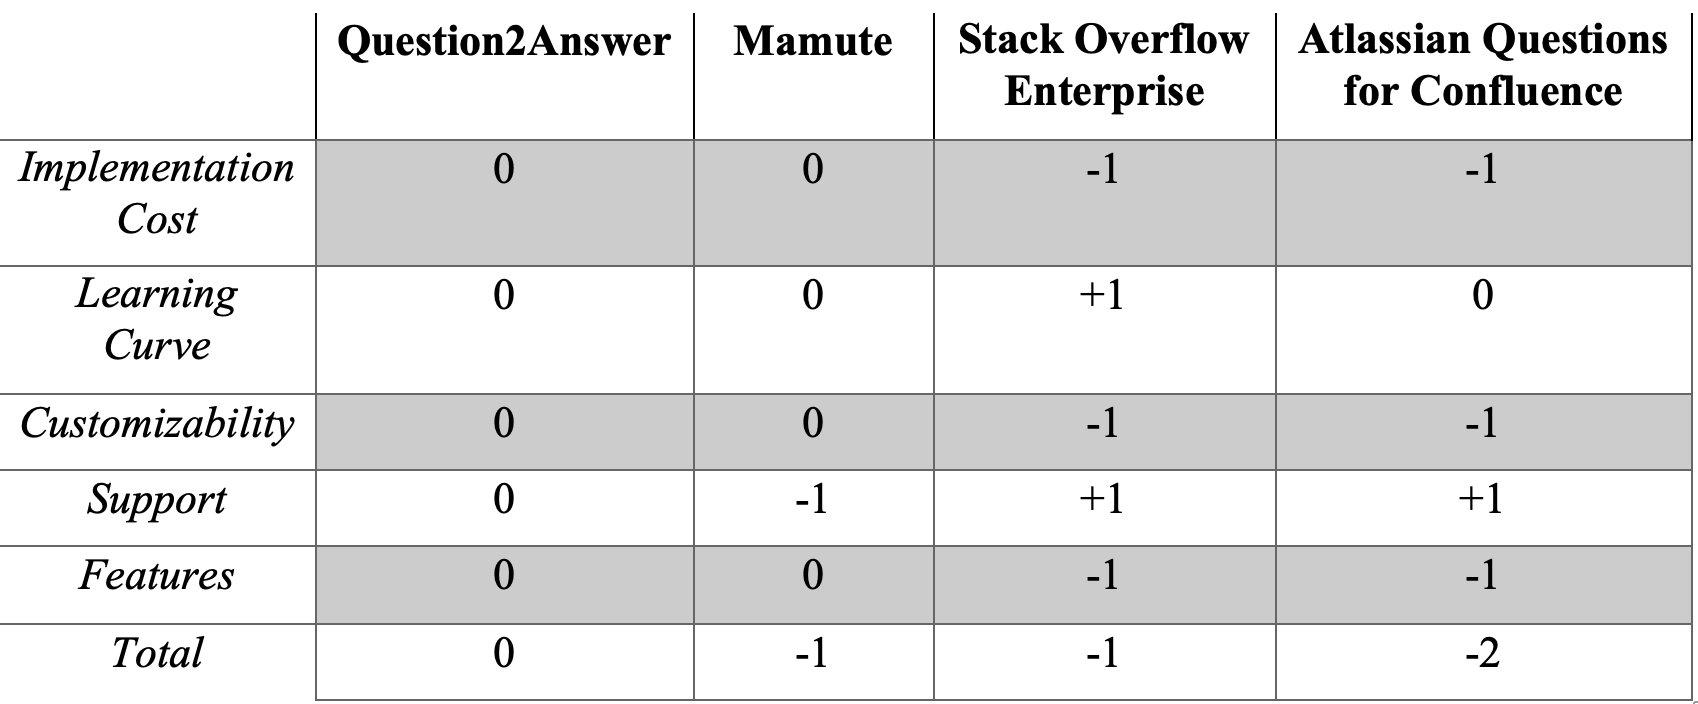 Decision Matrix Comparing the Implemented Solution with the Alternative Solutions